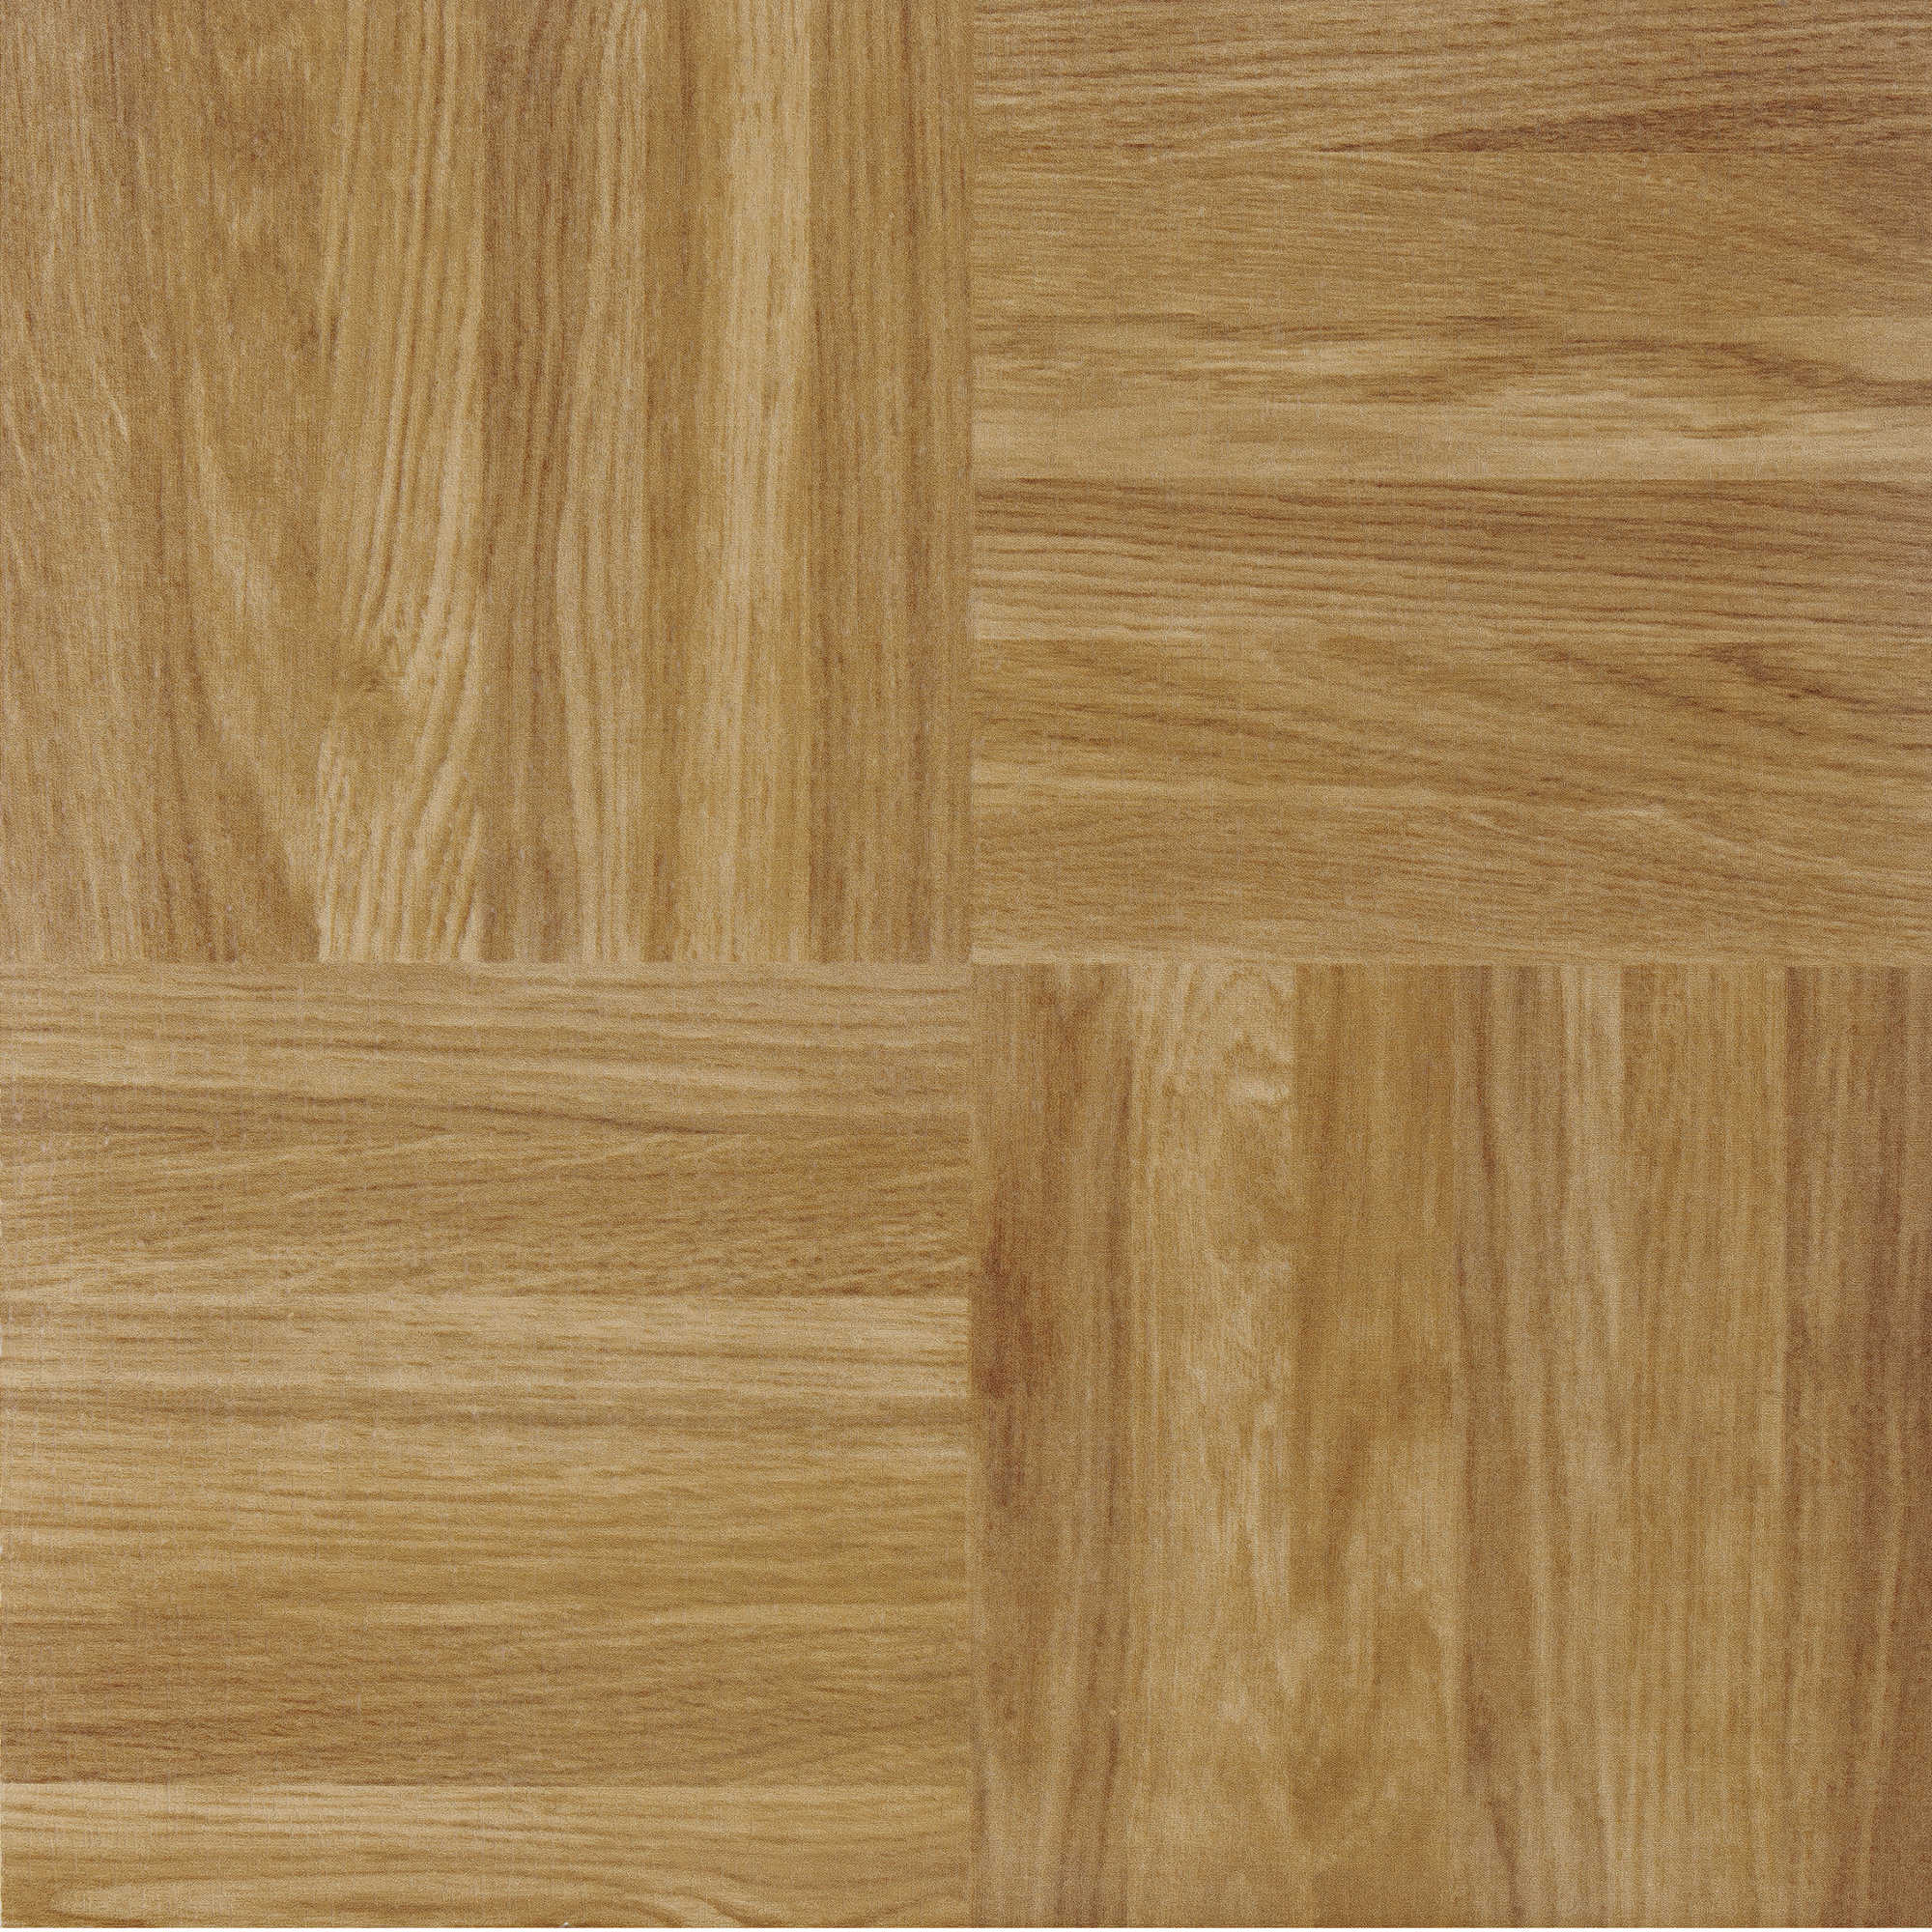 Achim Nexus Oak Parquet 12x12 Self Adhesive Vinyl Floor Tile - 20 Tiles/20 sq. ft.